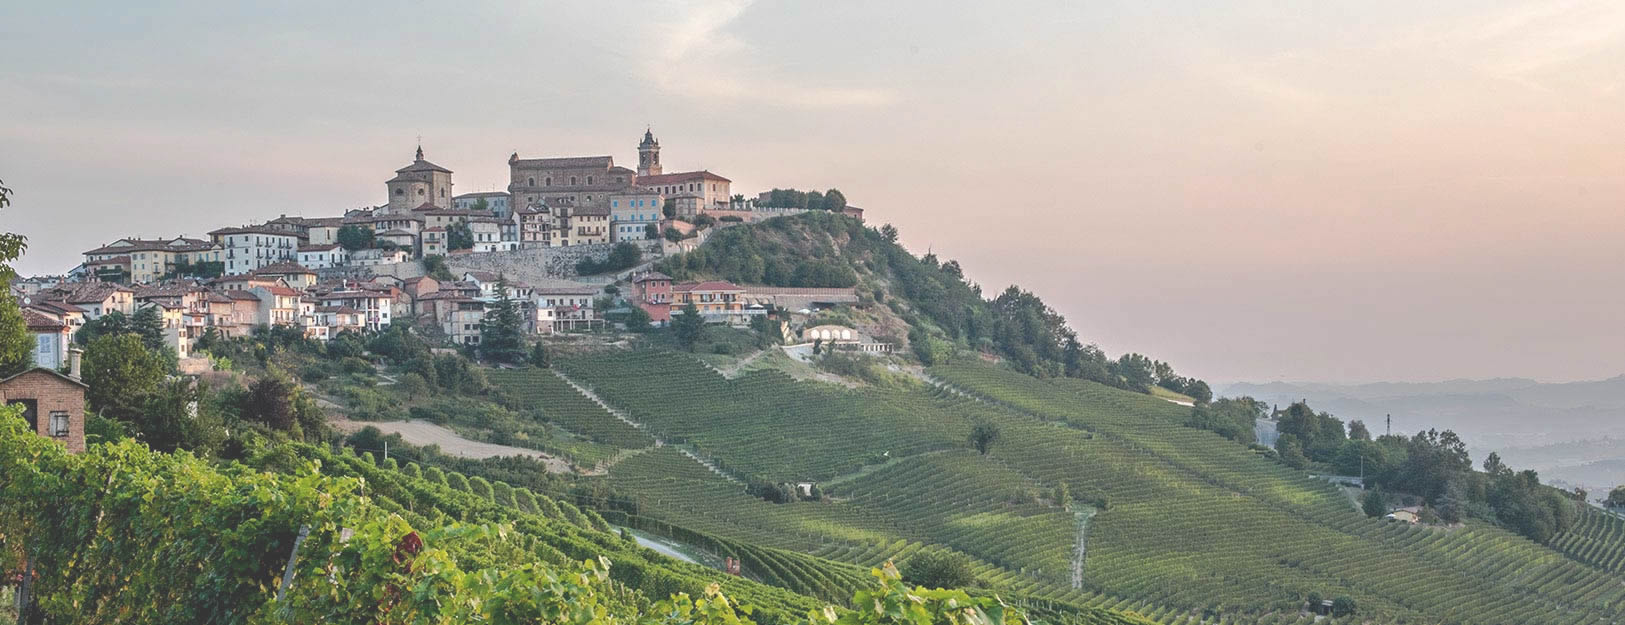 Morra: the heart of Langhe